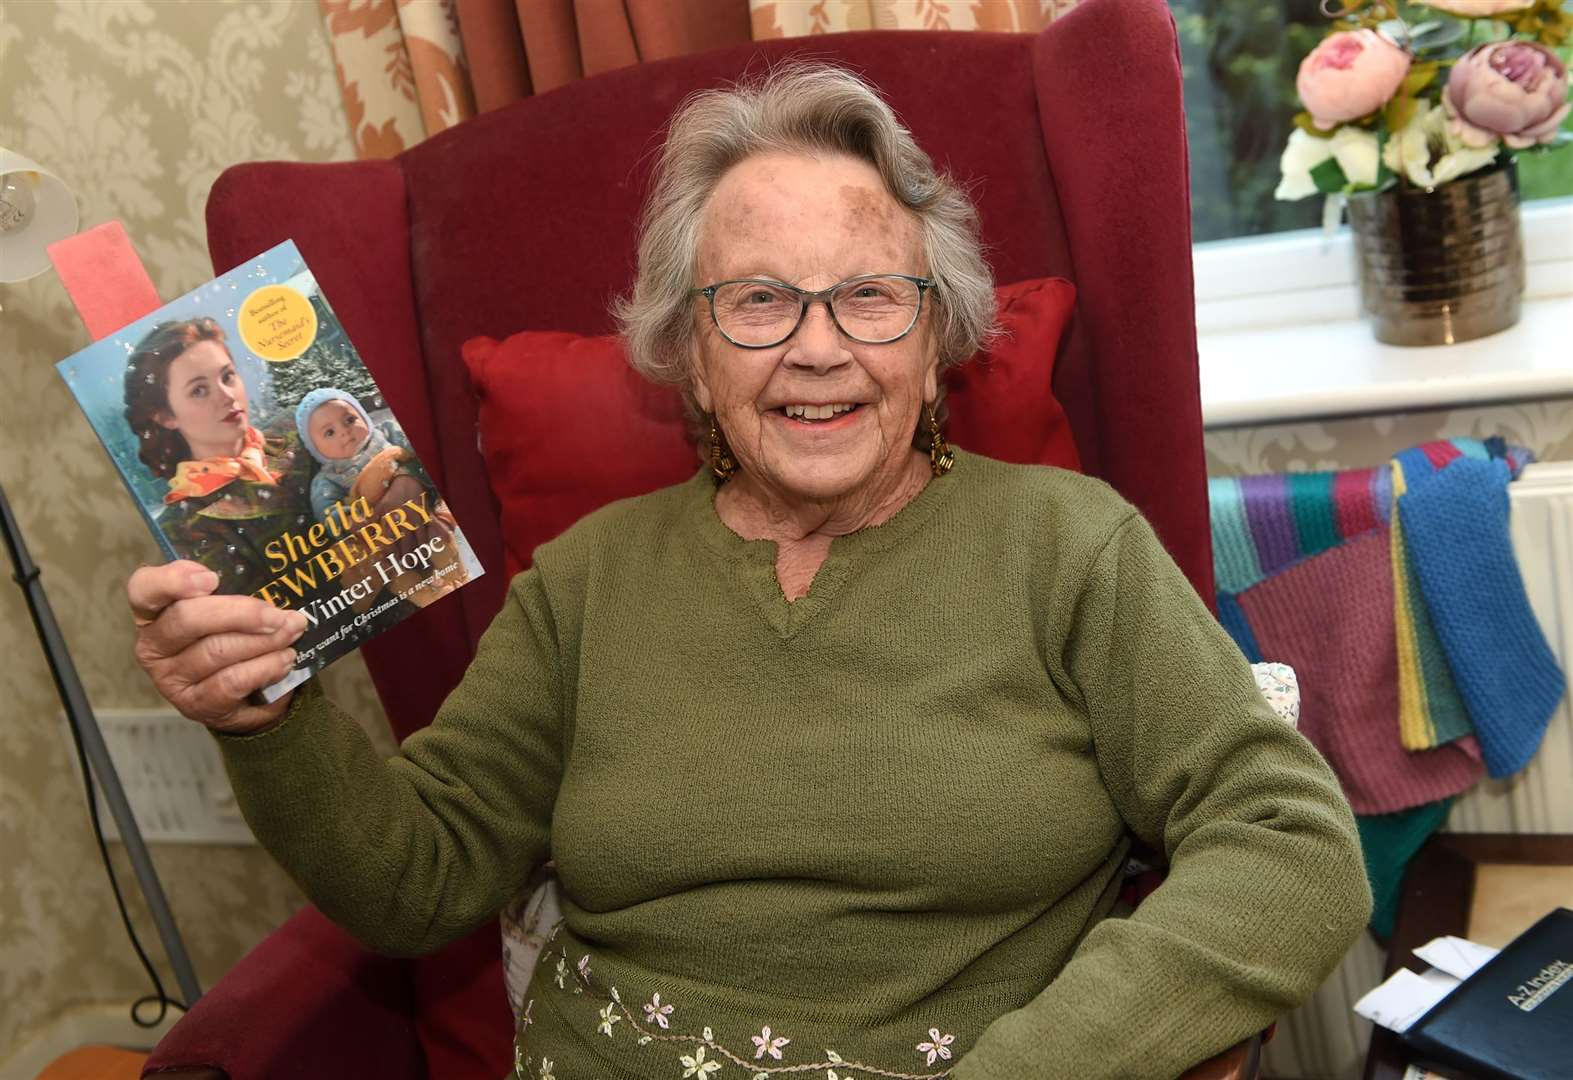 Former Diss Express reporter inspires book character